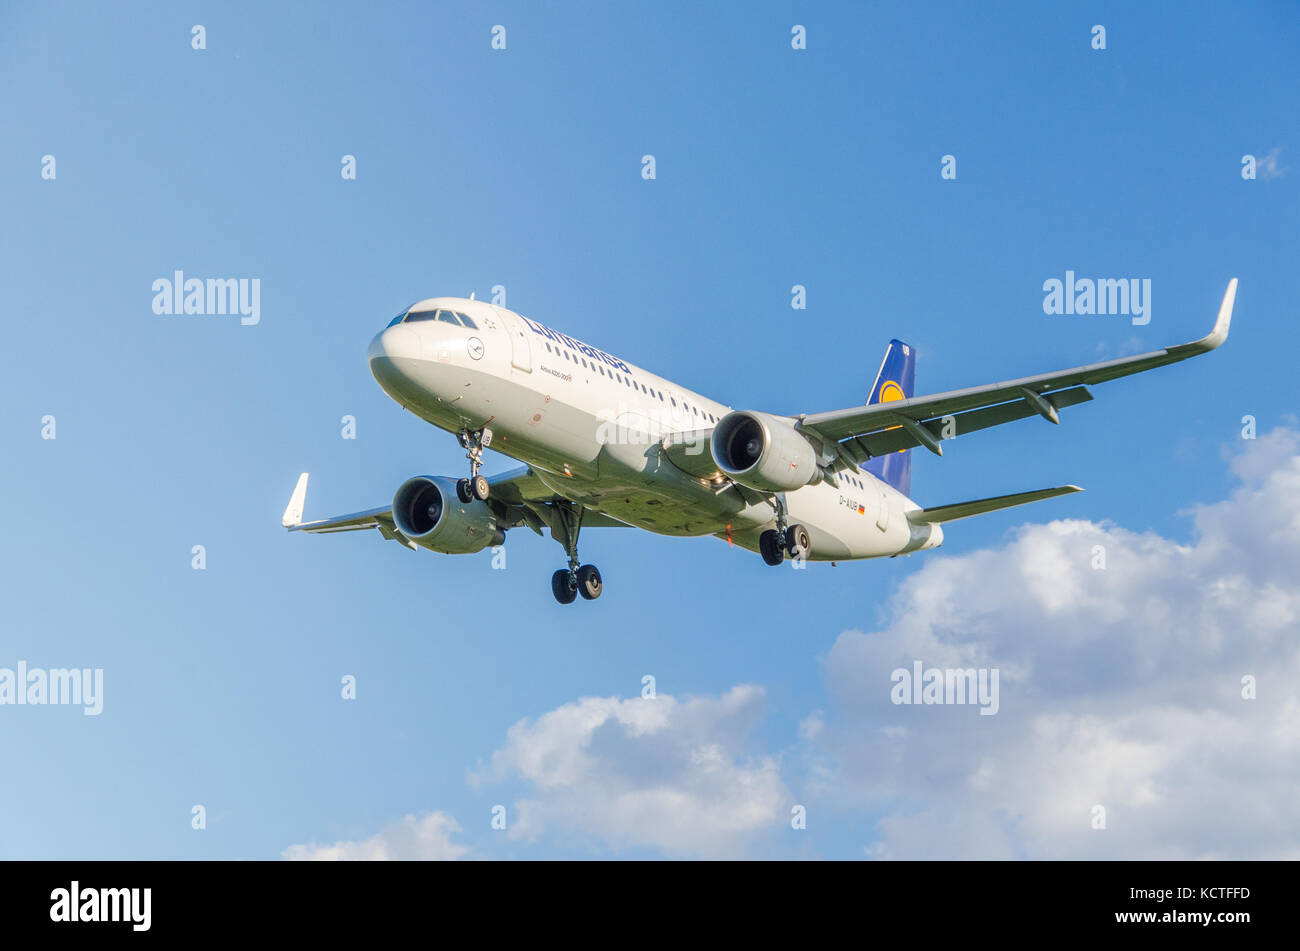 A Lufthansa Airbus A320-200  against a blue sky. These planes operate short-haul flights within Germany and Europe - Stock Image